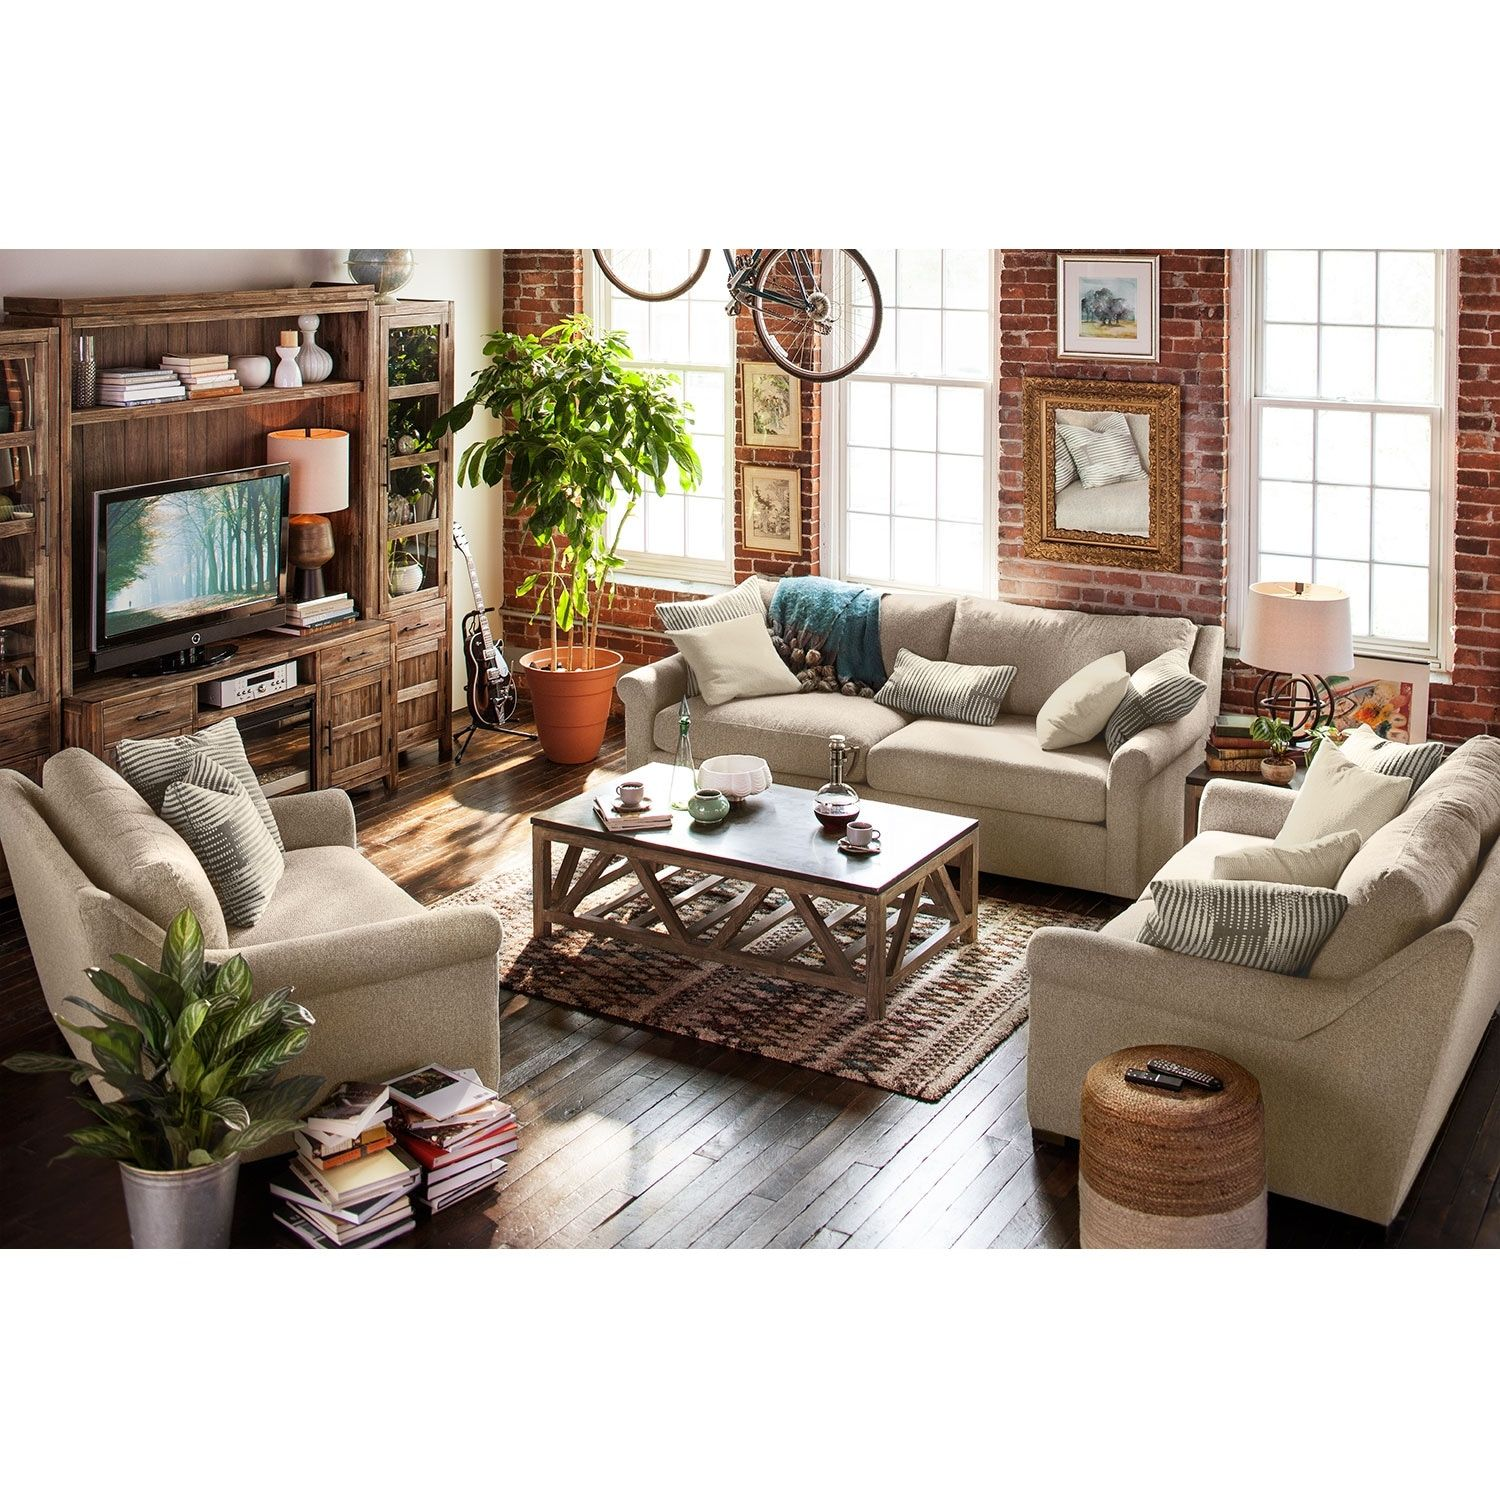 roberston sofa loveseat and chair and a half set value city rh in pinterest com